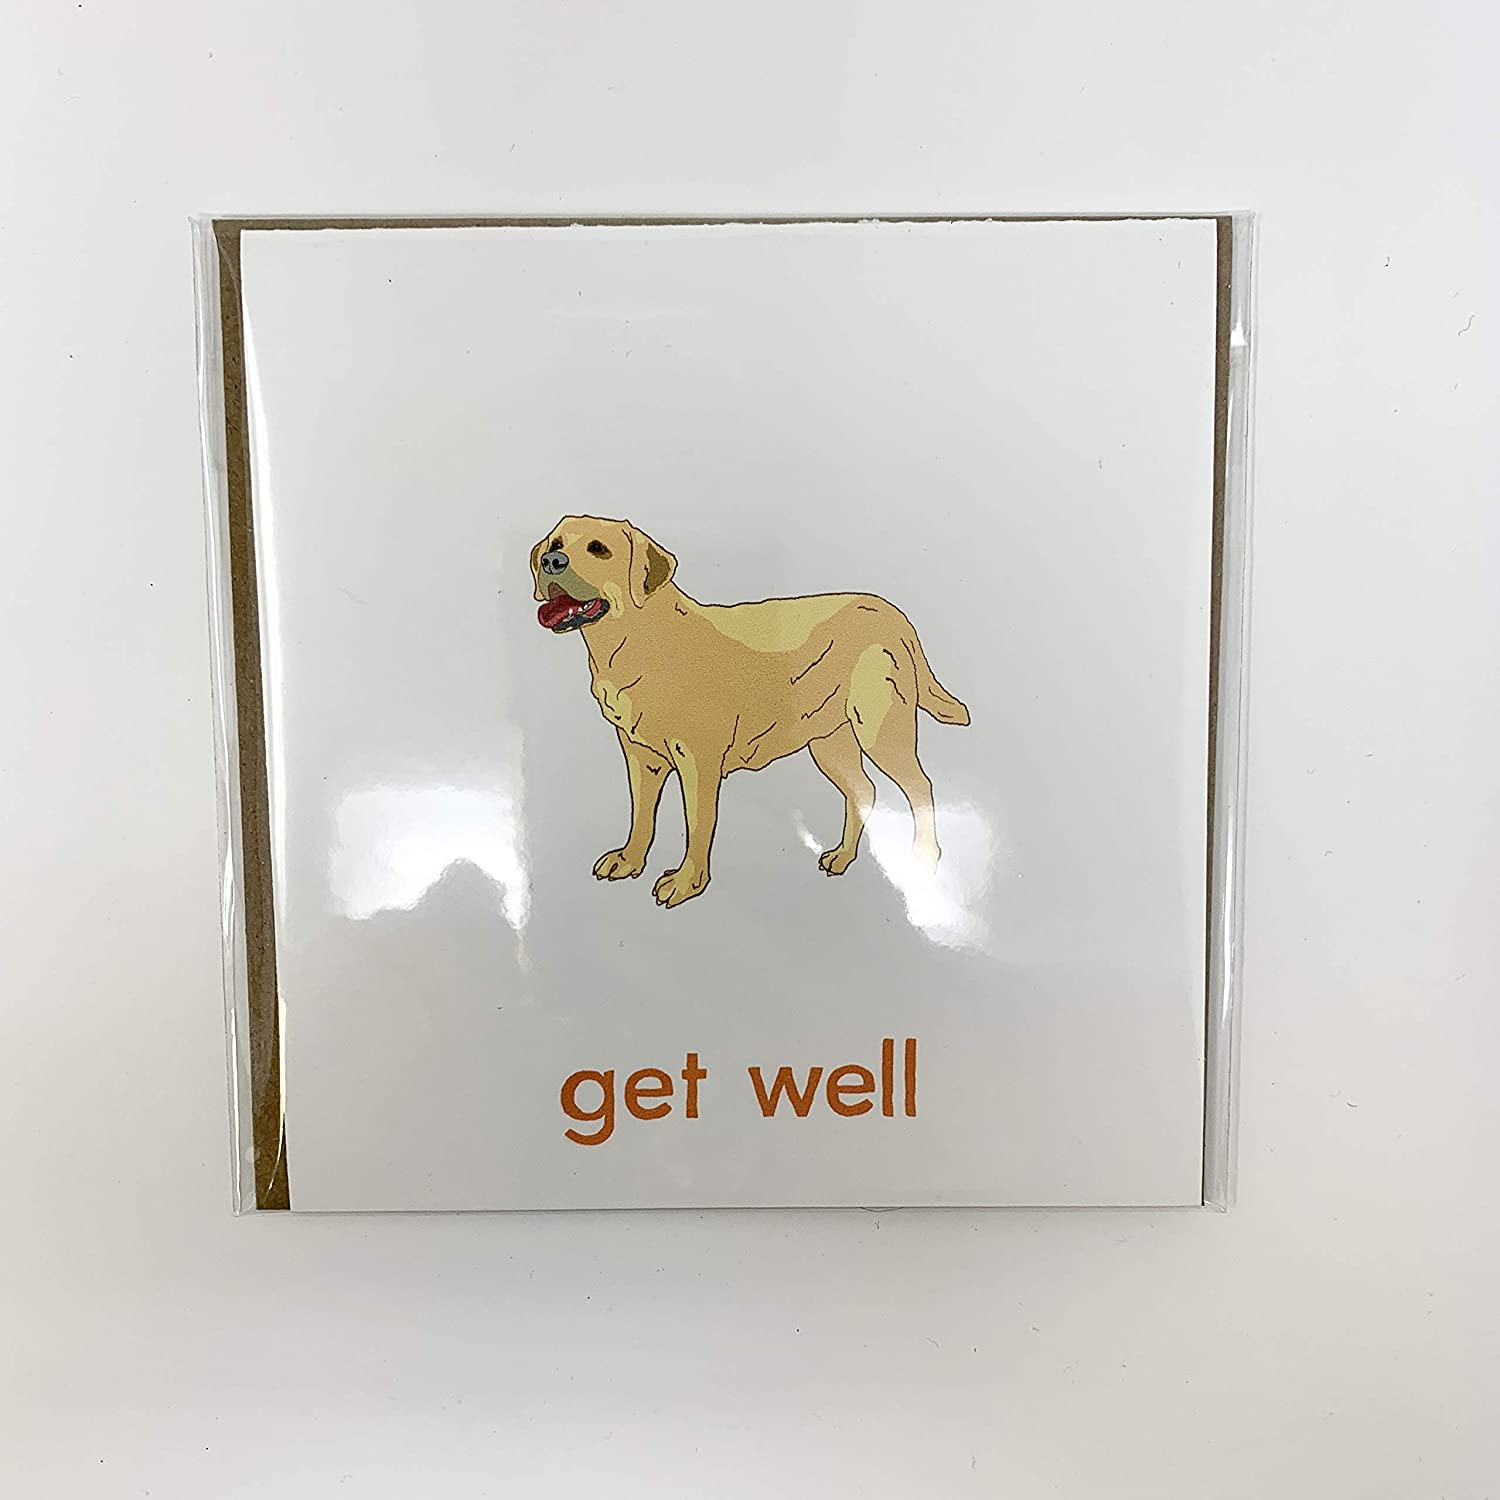 Yellow Labrador Retriever Get Card Well Greeting 2021 new Max 79% OFF